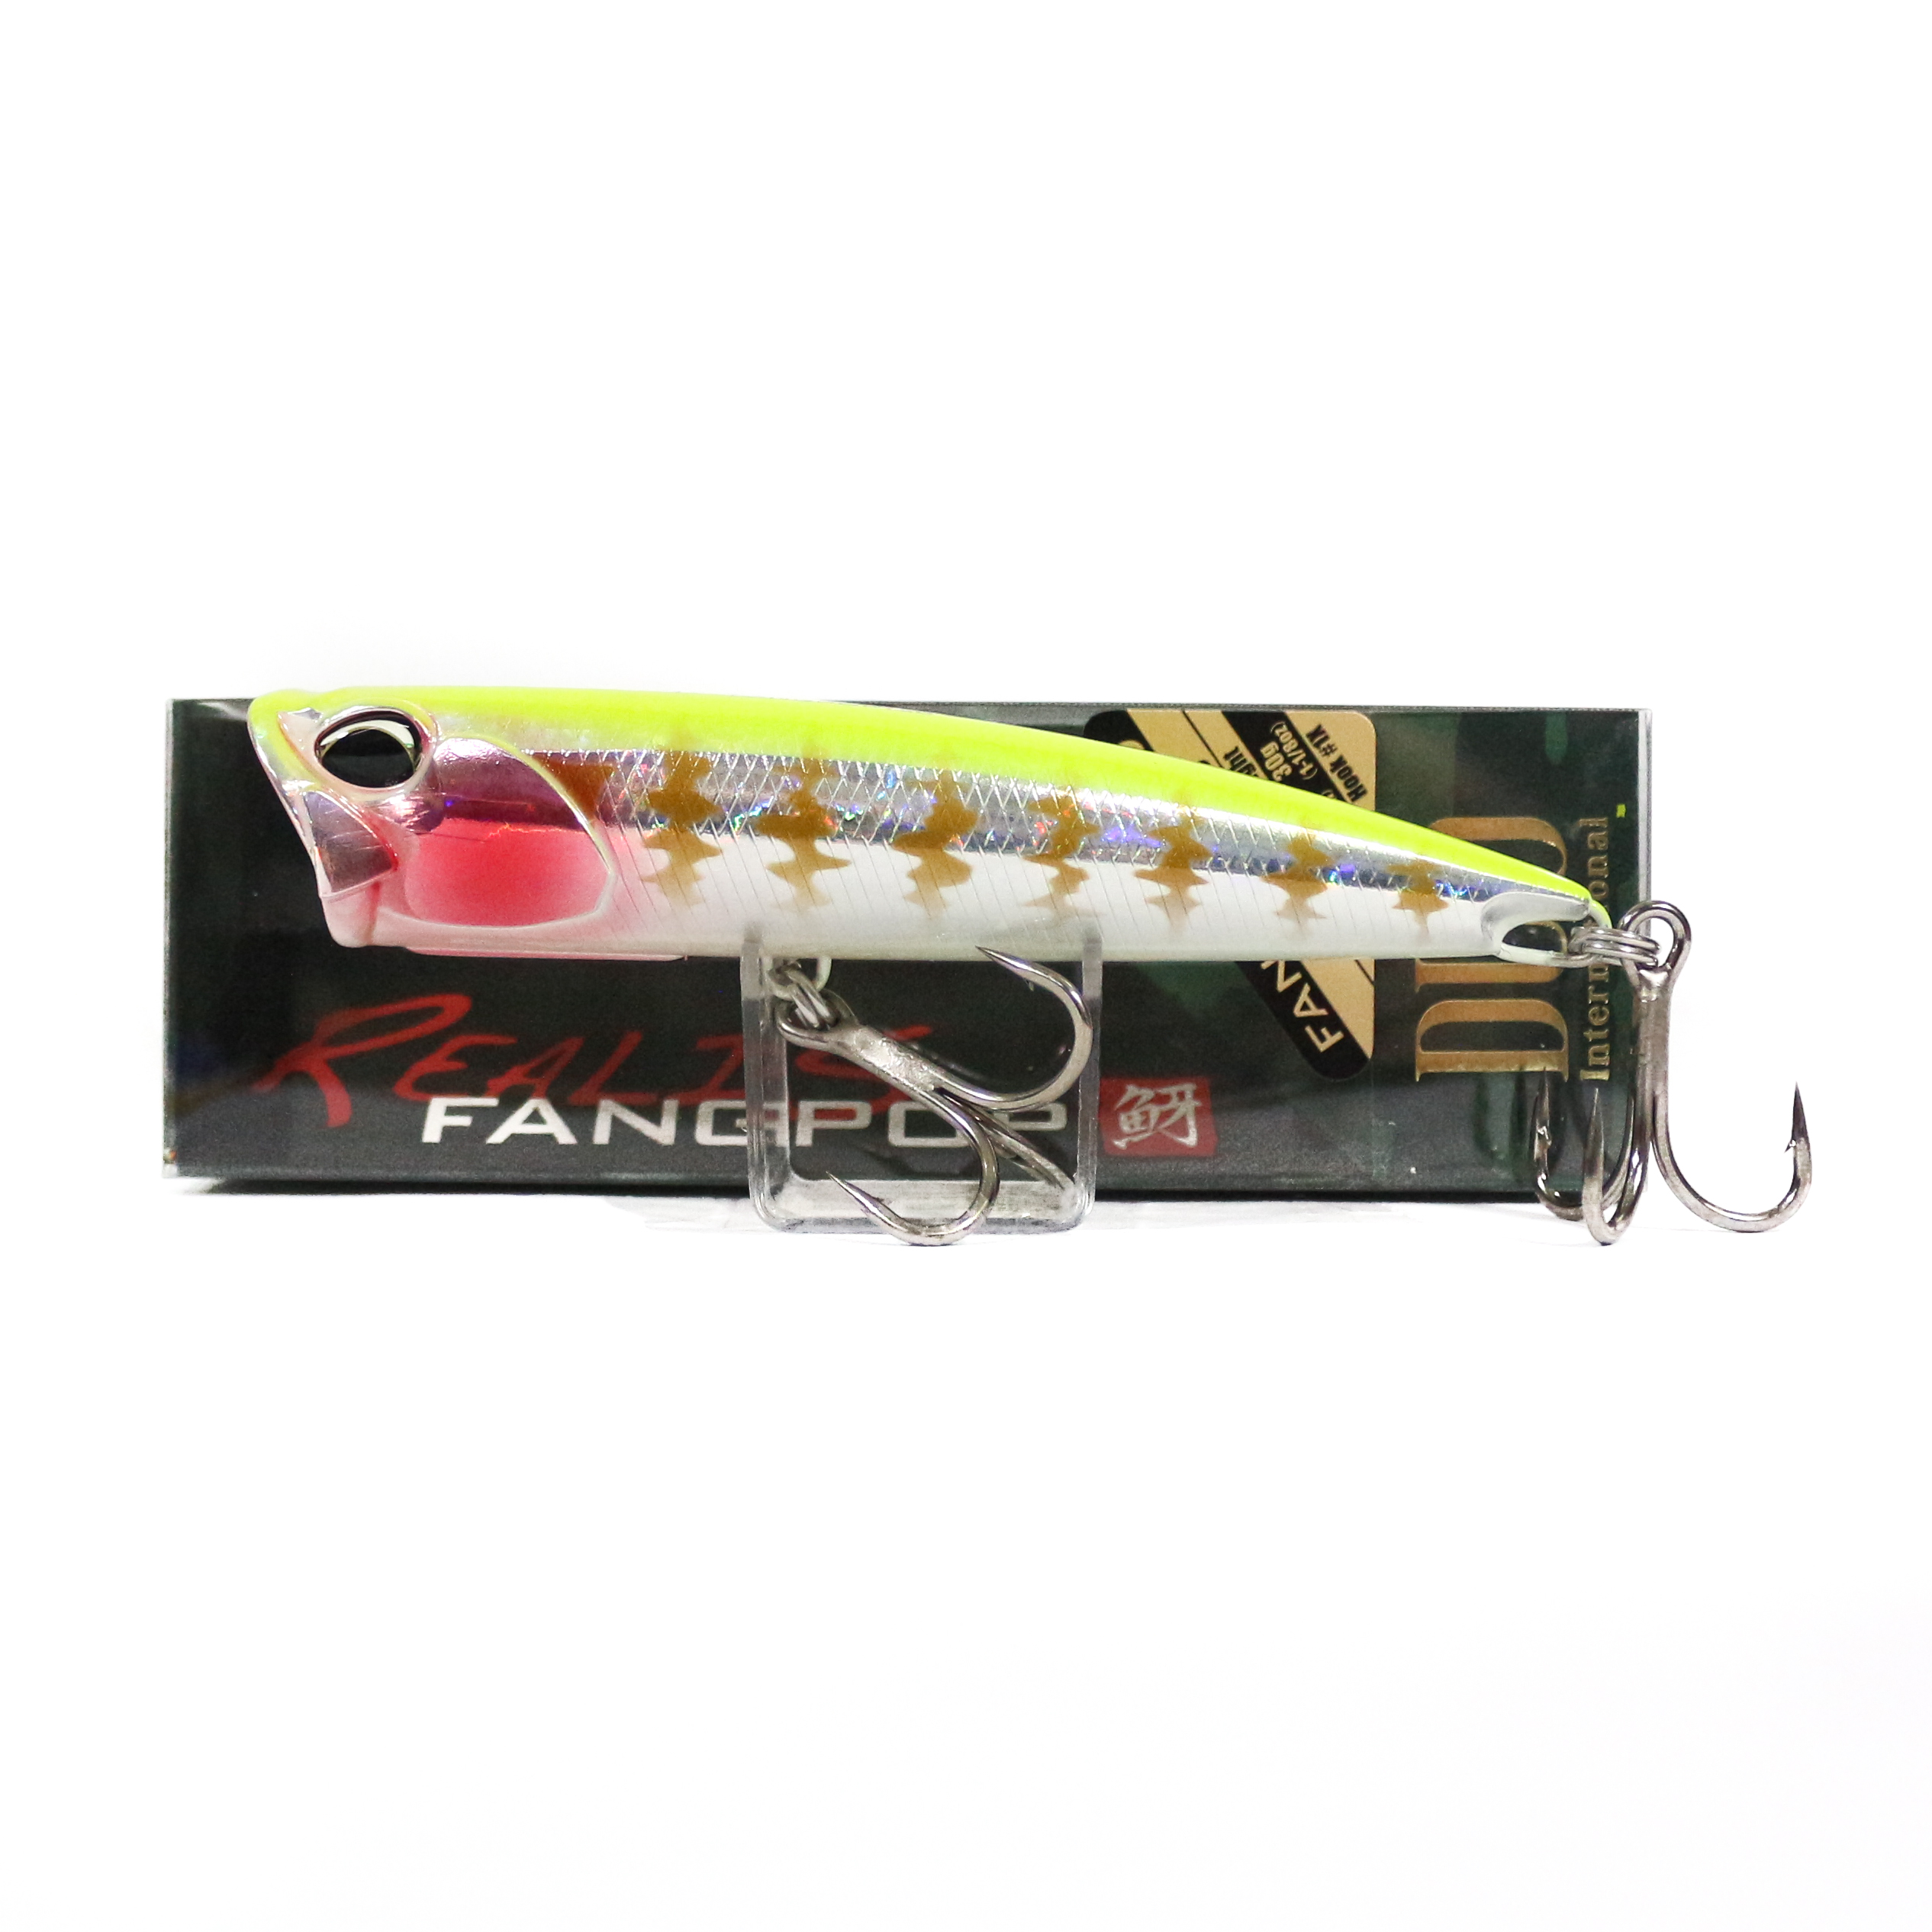 Duo Realis Fangbait 100DR Floating Lure ADA3305 6414